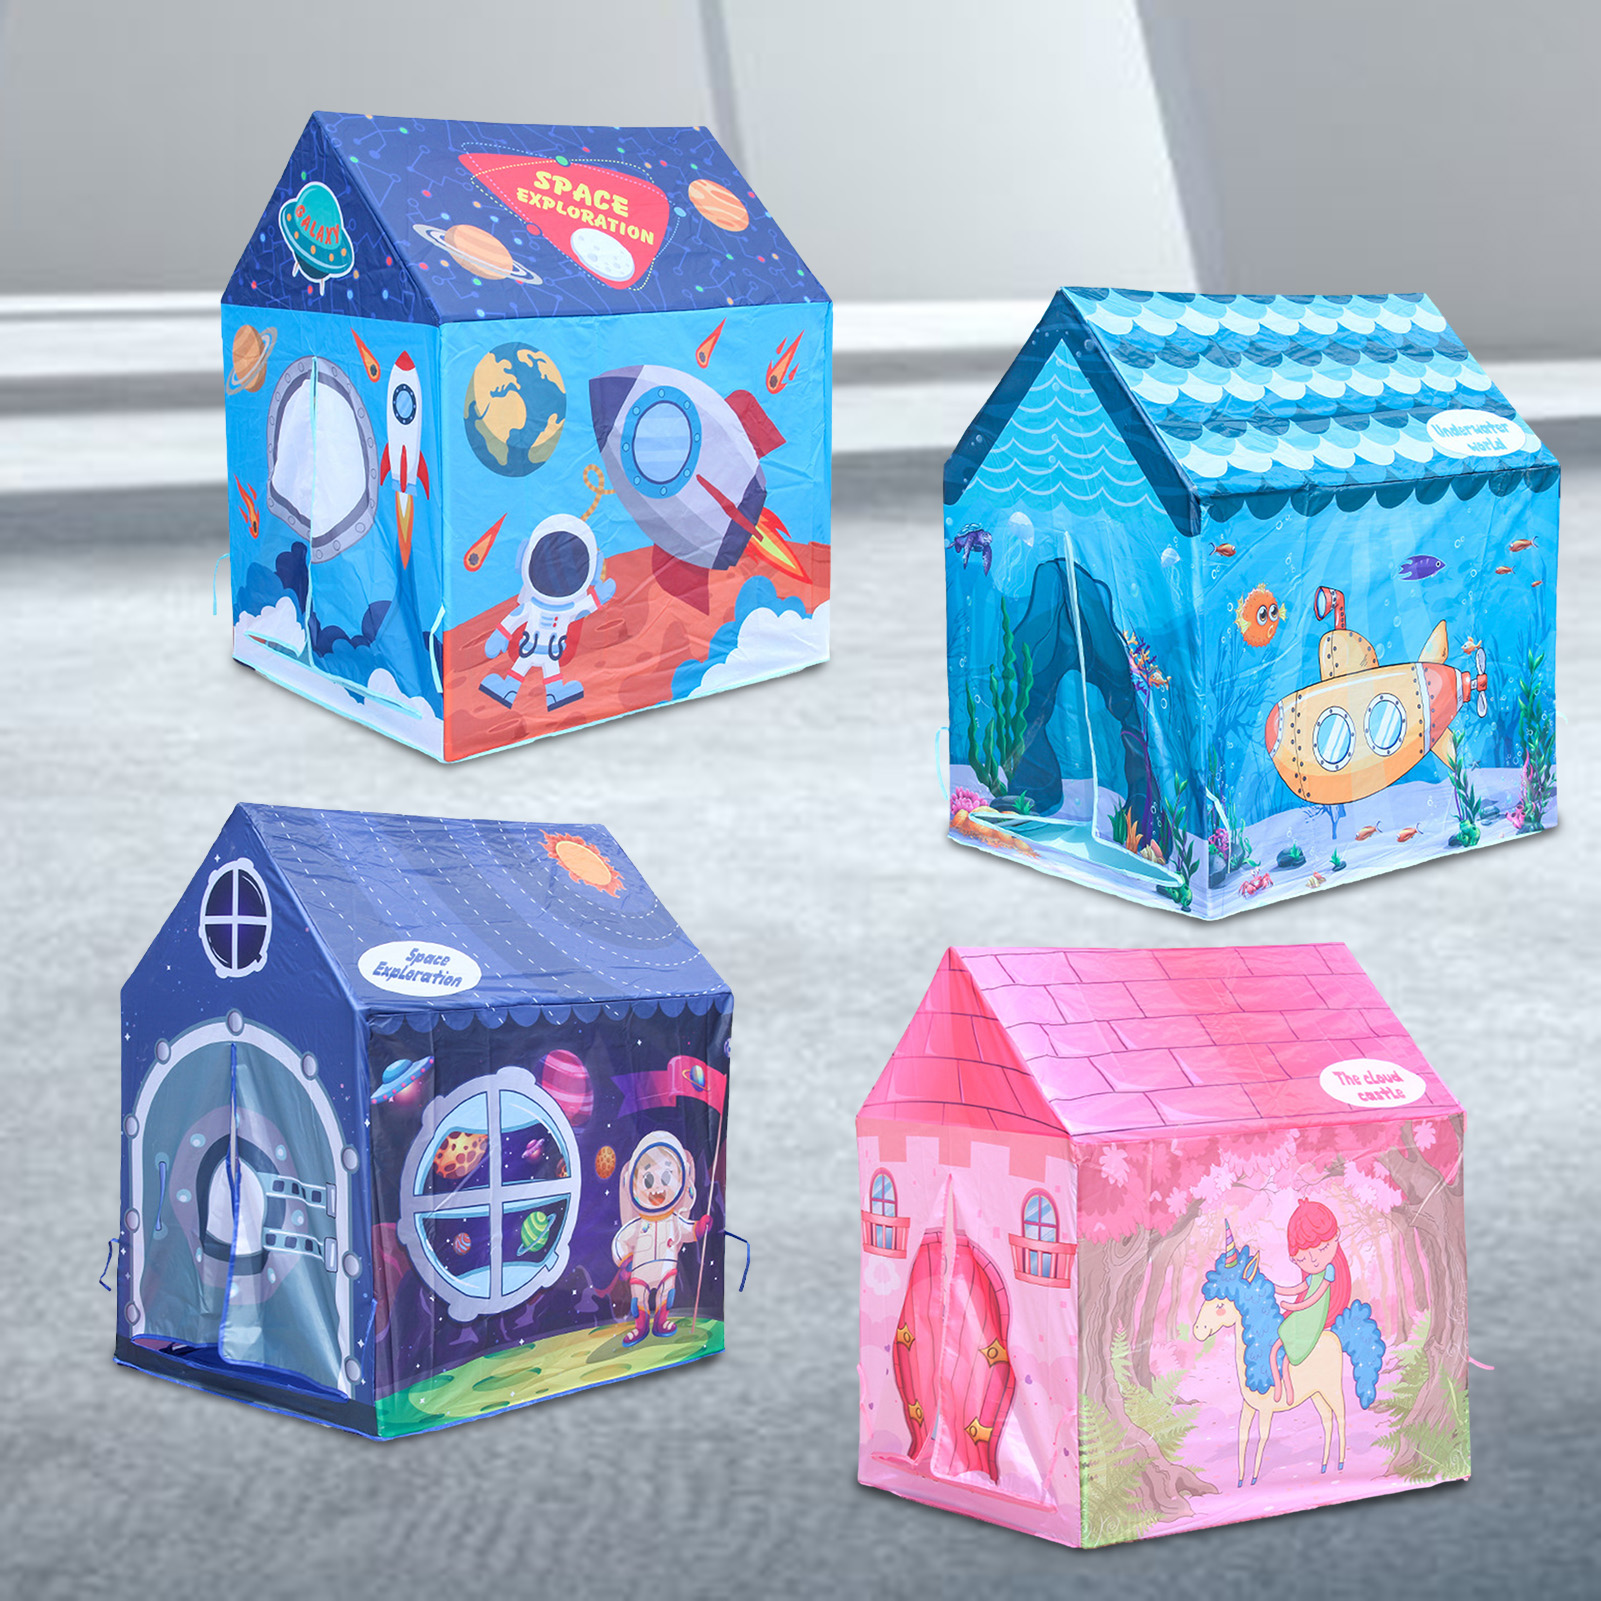 Kids Tents Folding Playhouse Tent Set Portable Children Tent Baby Play House Room Decoration For Boys Girls Castle House